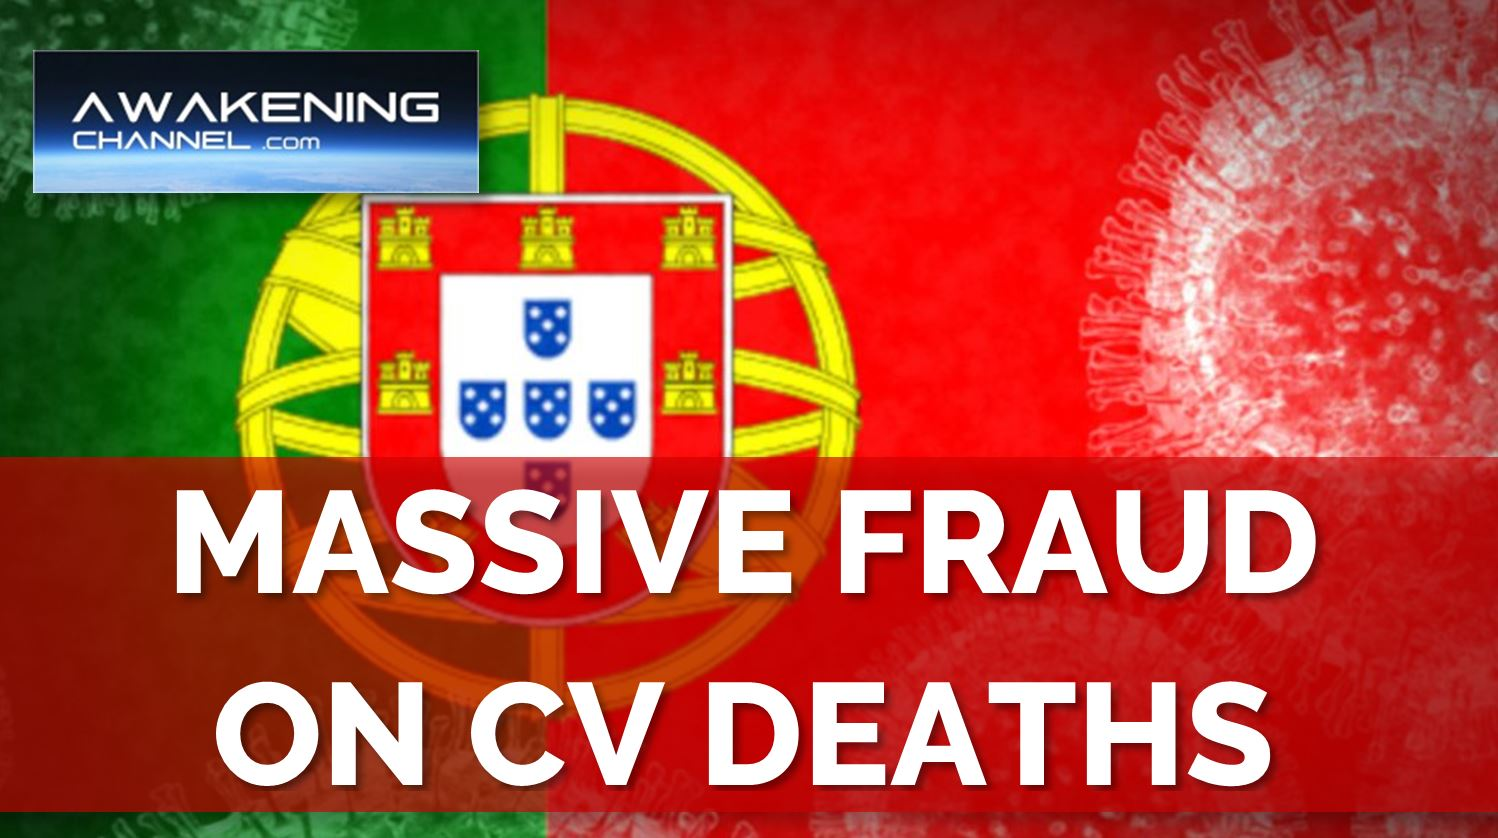 Massive Fraud on CV Deaths in Portugal